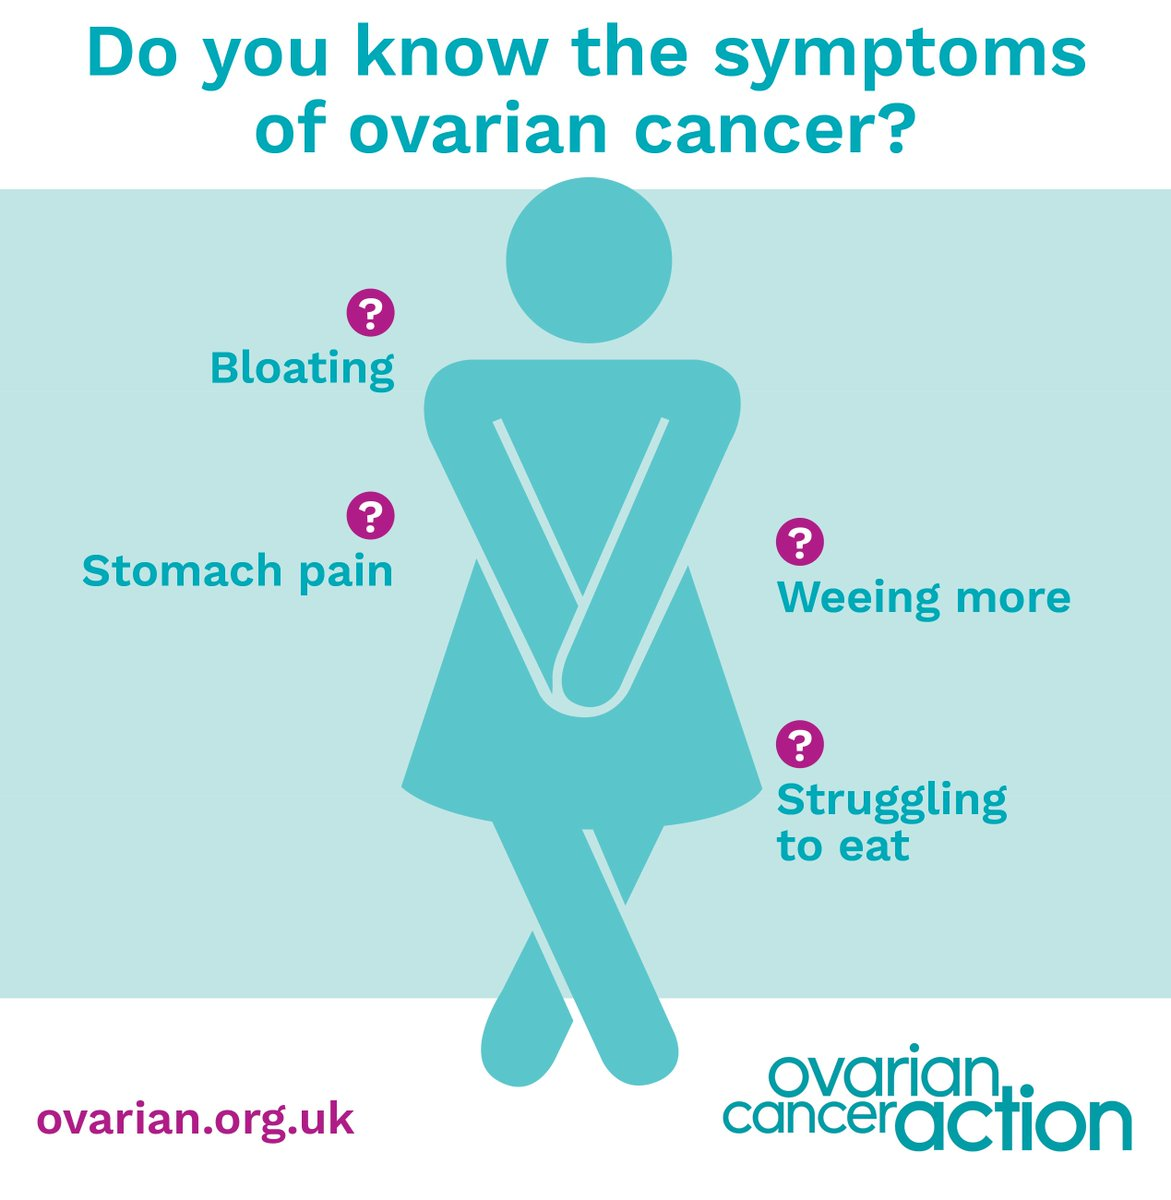 Ovarian Cancer Action On Twitter Here In The Uk 7 400 Women Are Diagnosed With Ovarian Cancer Every Year And A Woman Dies From Ovarian Cancer Every 2 Hours The Earlier The Diagnosis